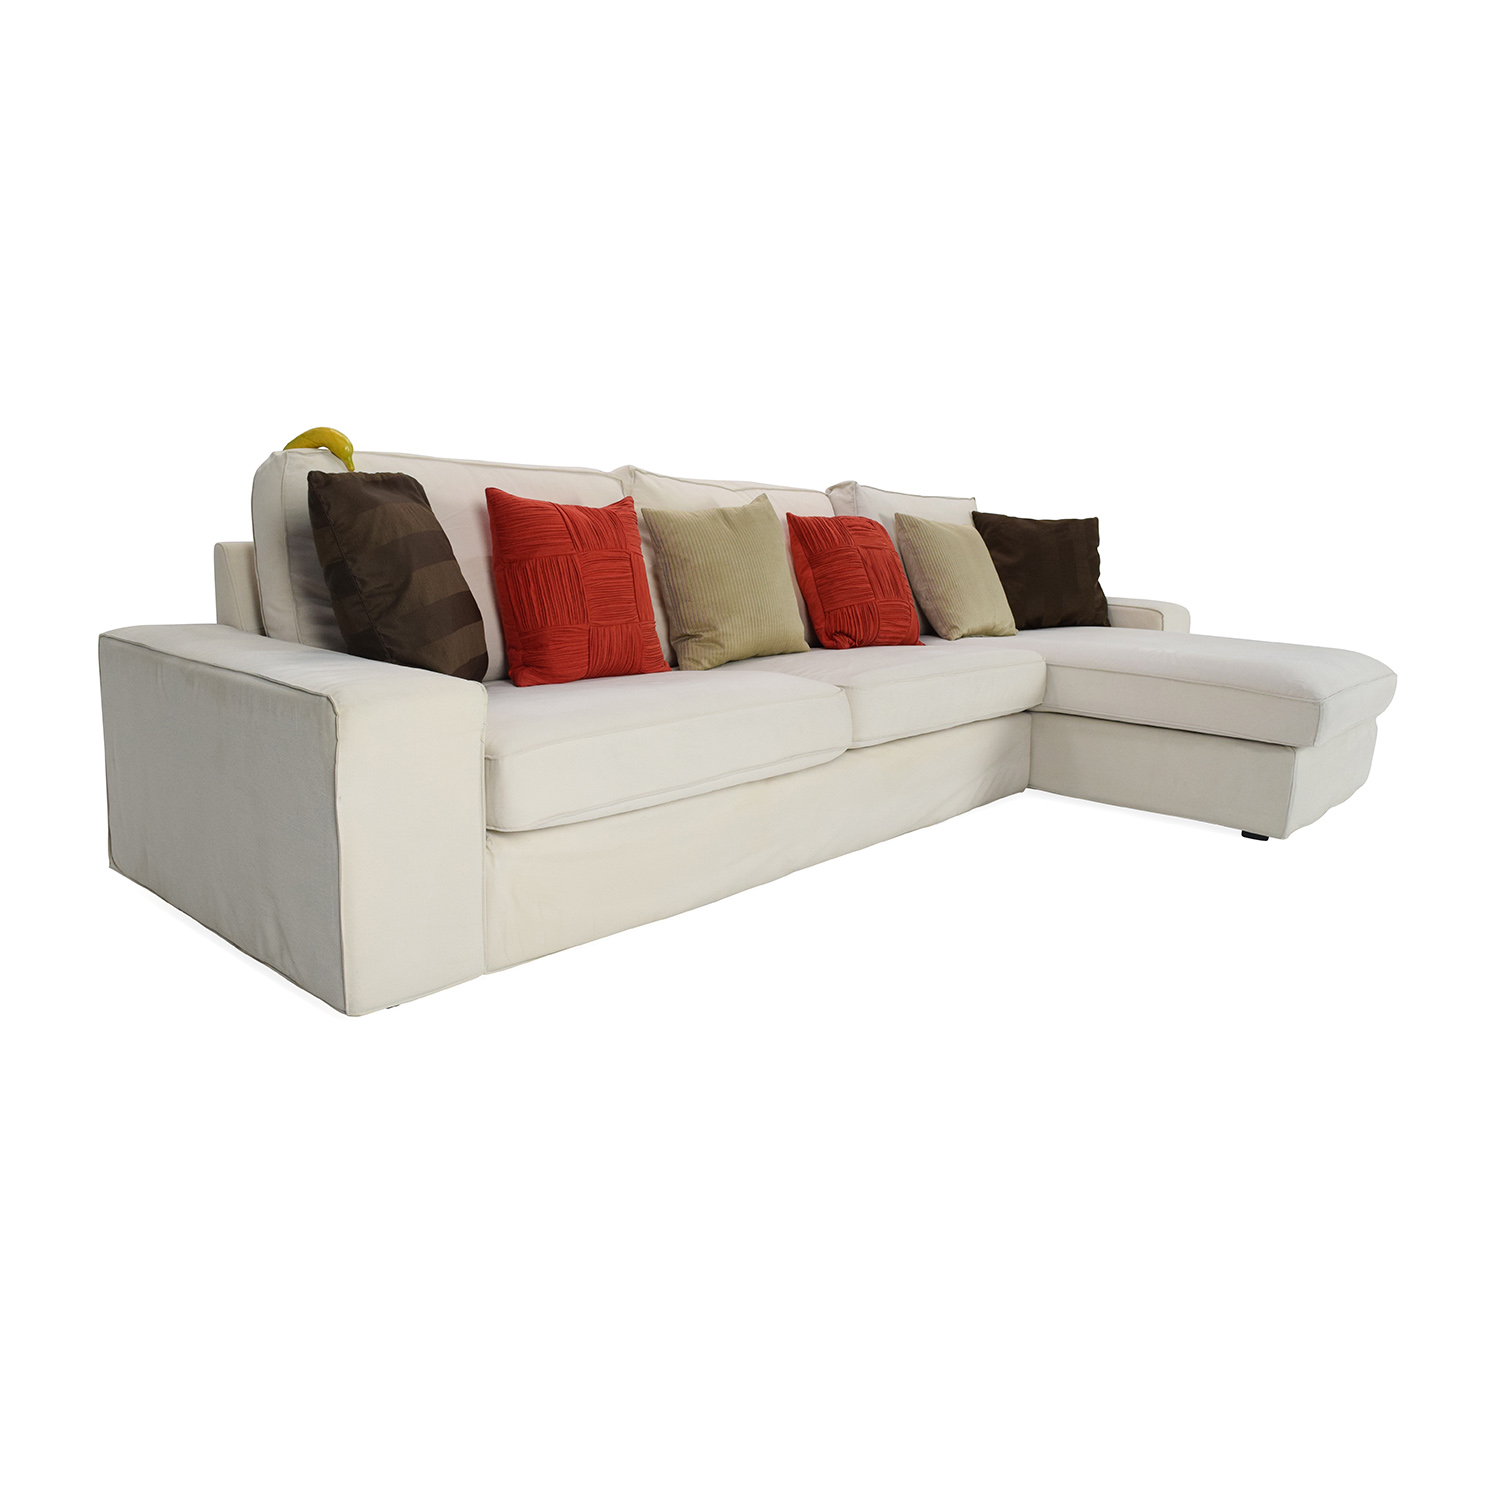 50 off ikea eggshell white sofa with chaise sofas. Black Bedroom Furniture Sets. Home Design Ideas